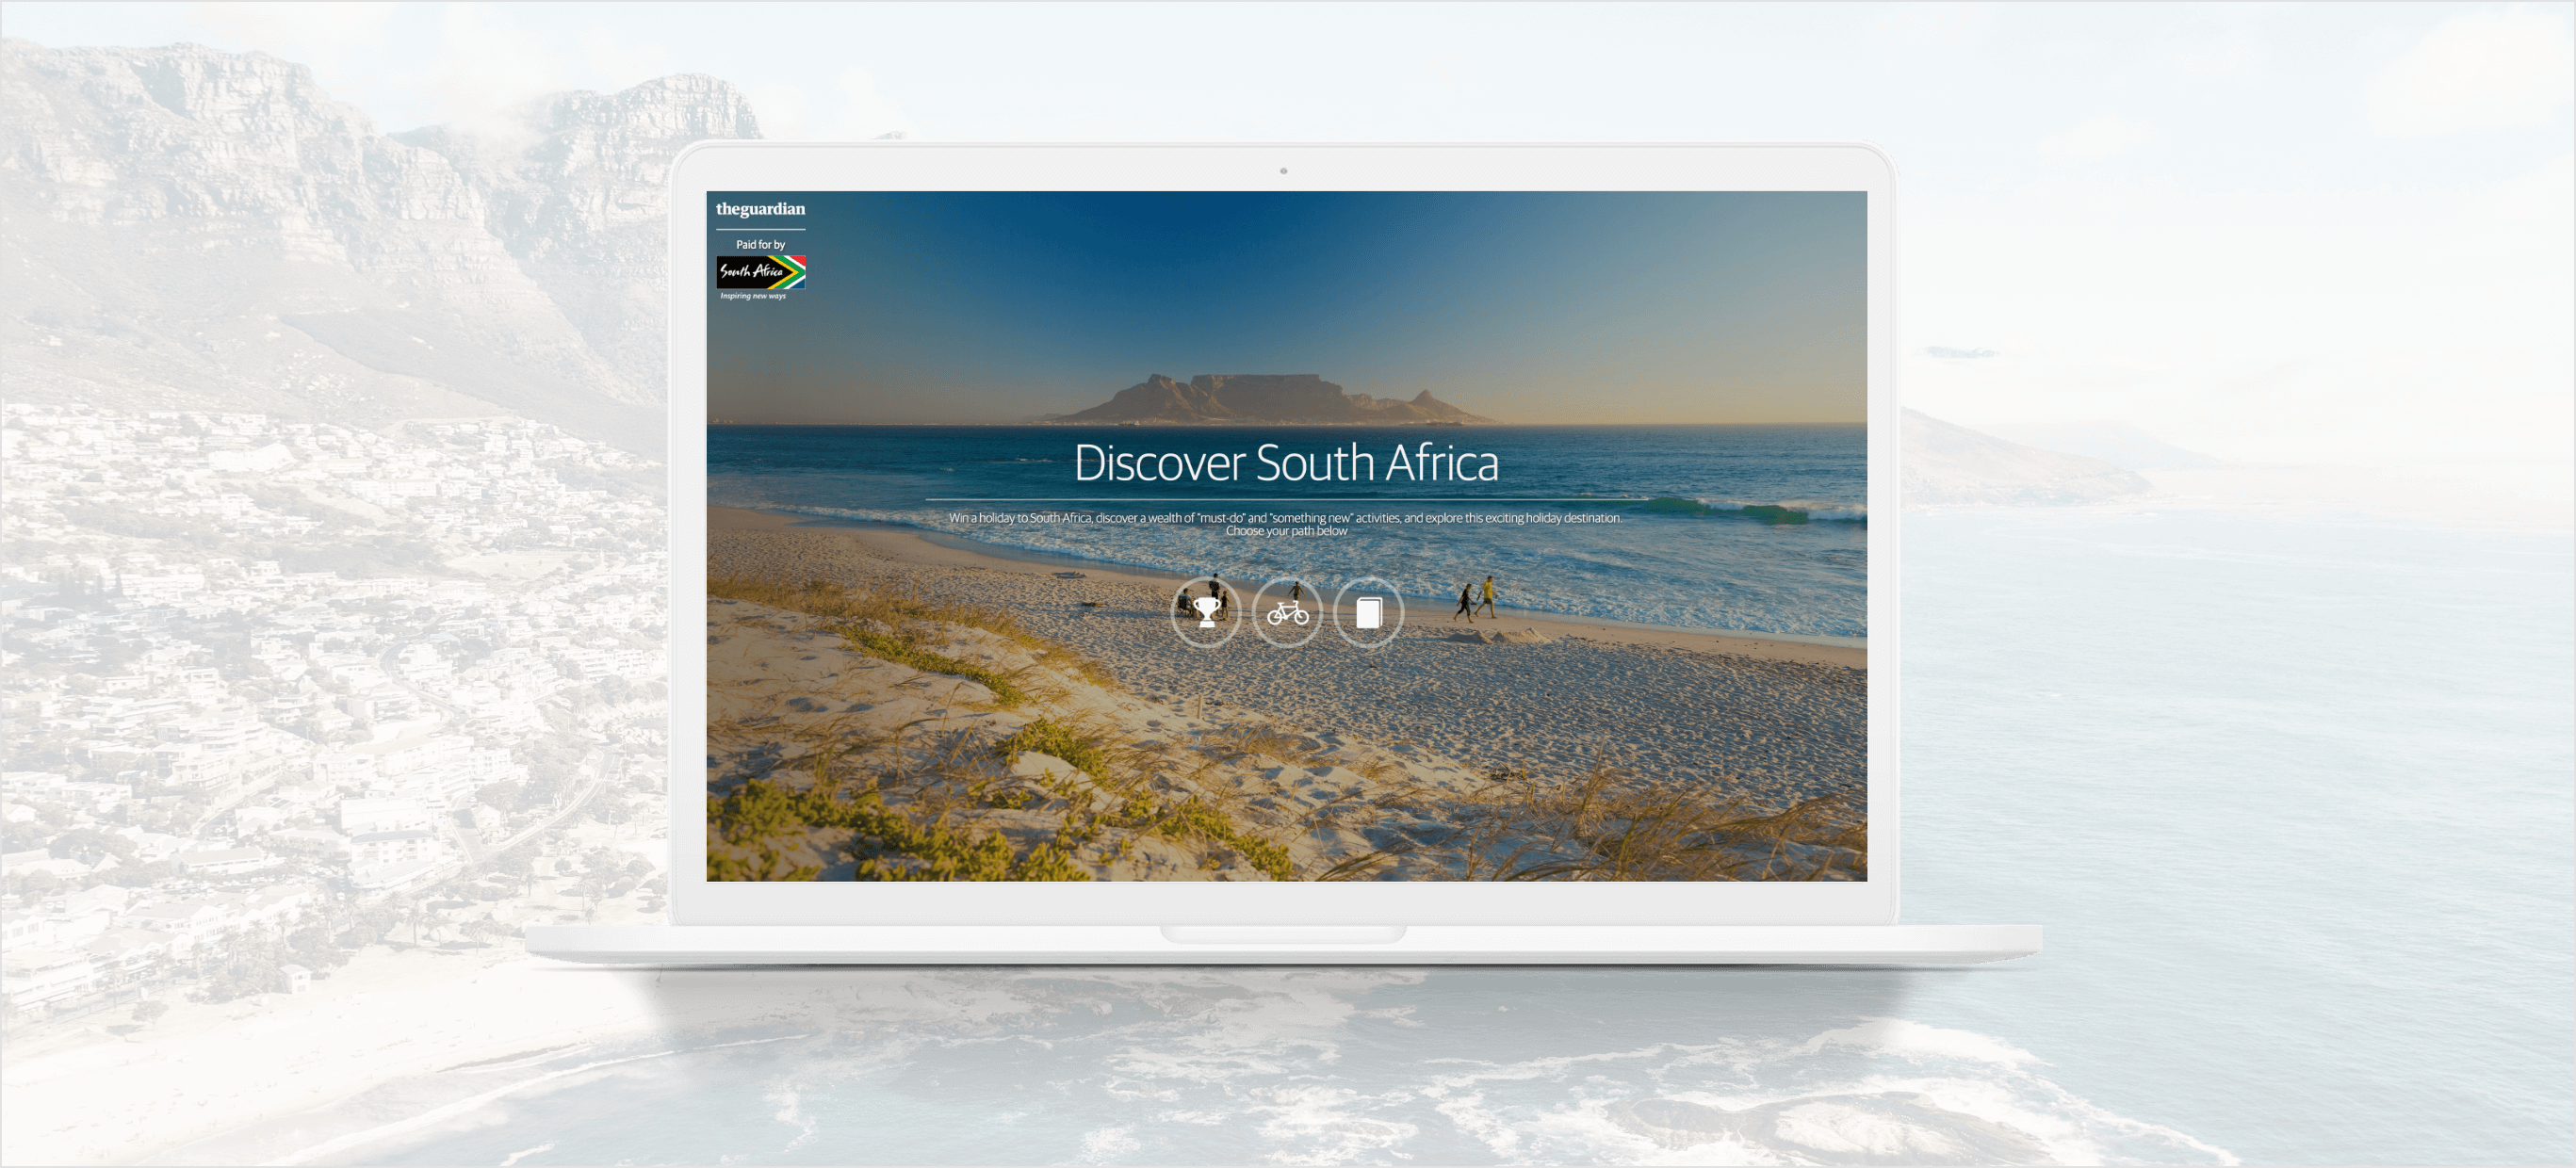 Discover South Africa – The Guardian - South Africa, a destination uncovered